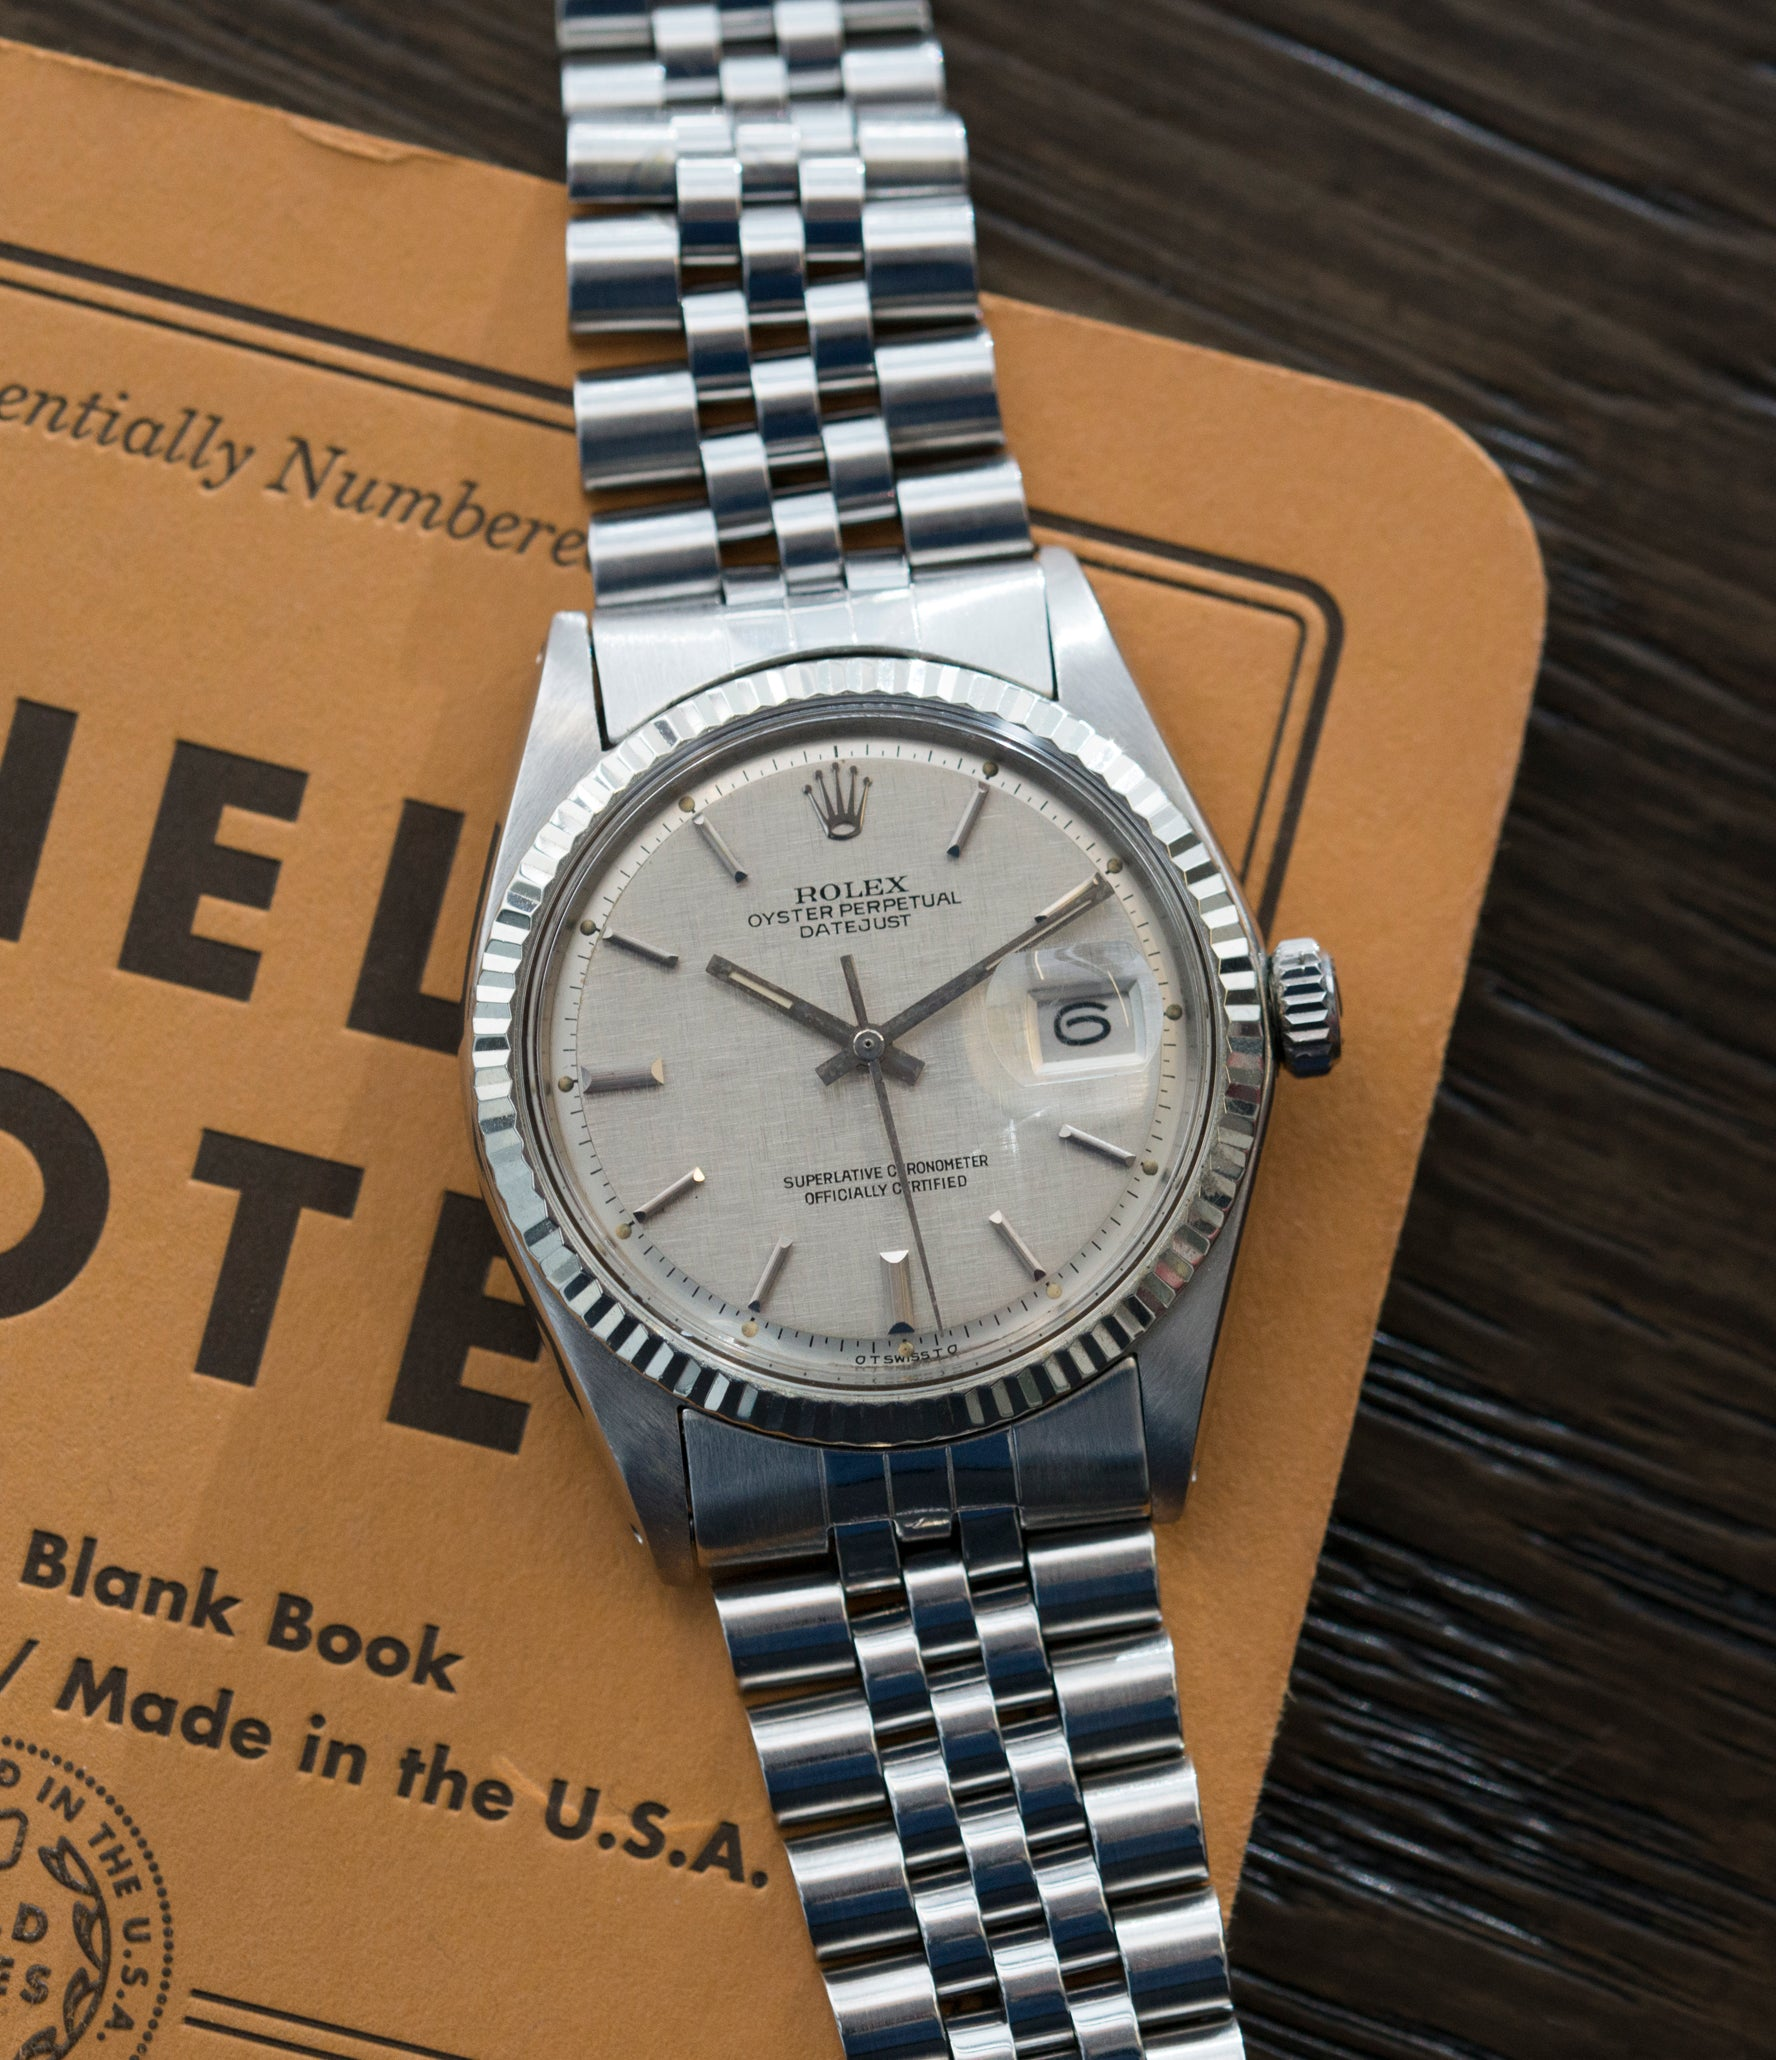 shop Rolex Datejust 1601 linen dial Oyster Perpetual vintage automatic steel sport dress watch for sale online at A Collected Man London UK specialist rare vintage watches